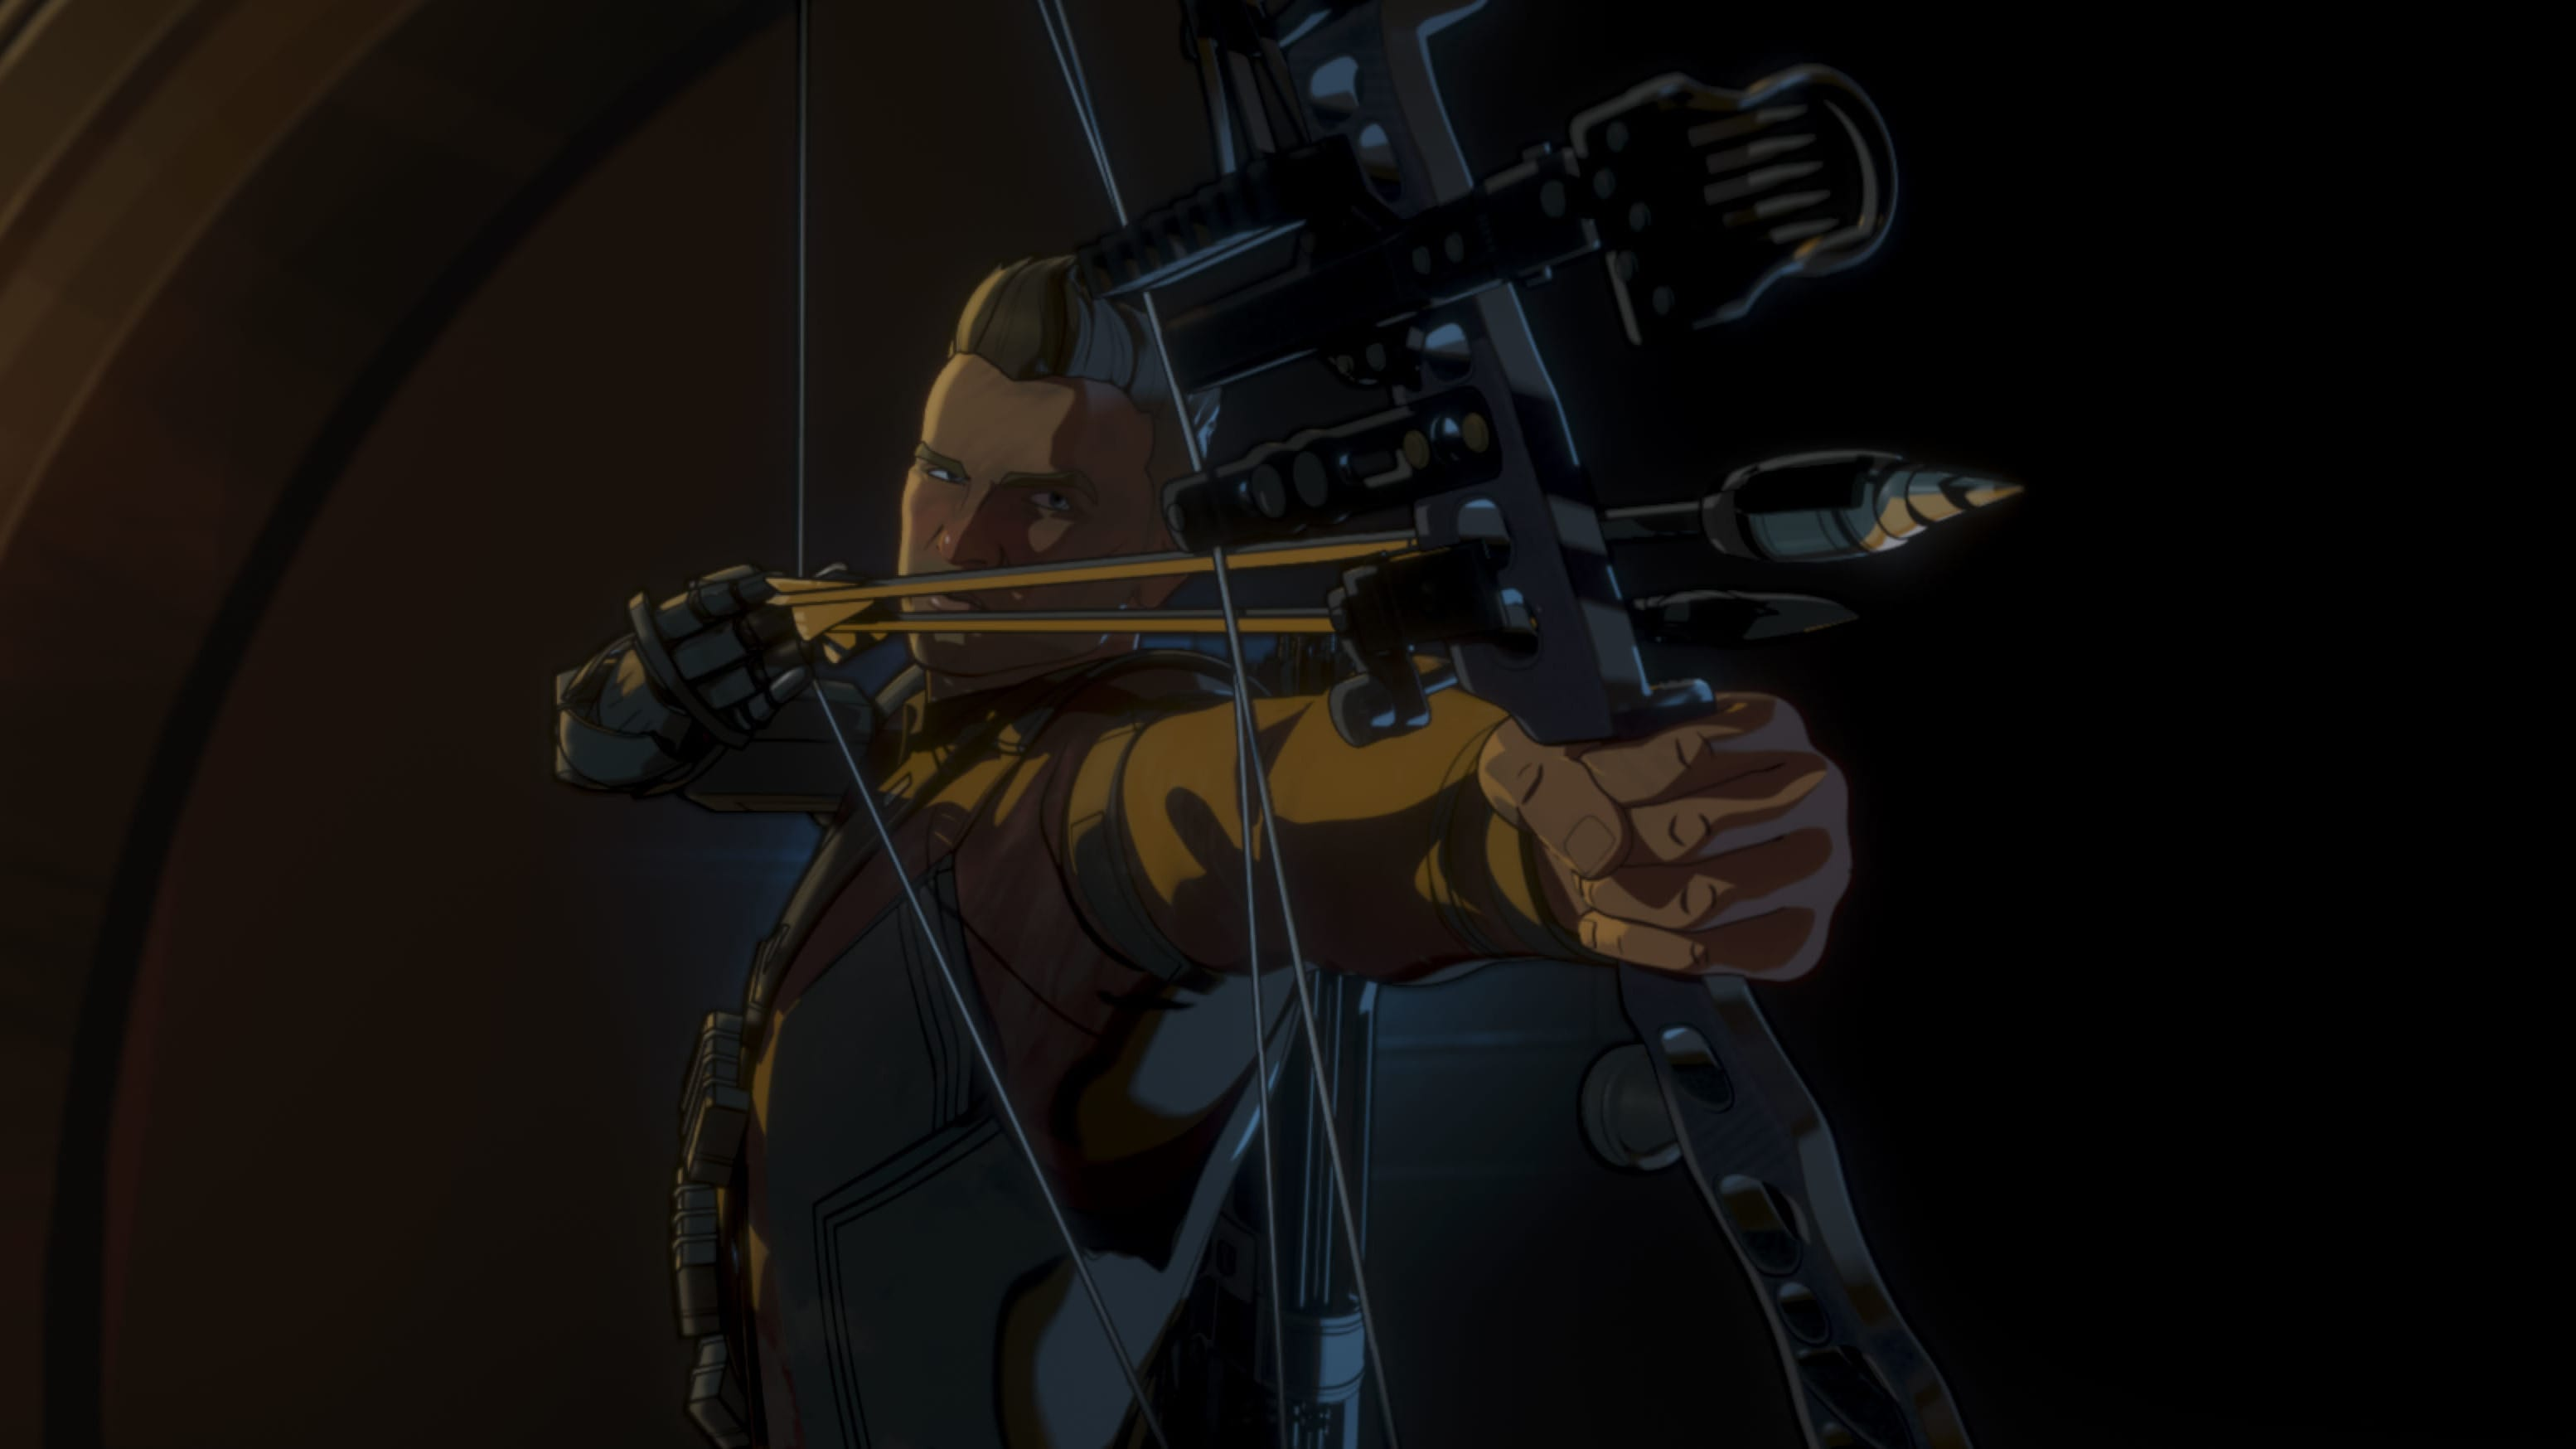 Post-Apocalyptic Hawkeye in Marvel Studios' WHAT IF...? exclusively on Disney+. ©Marvel Studios 2021. All Rights Reserved.